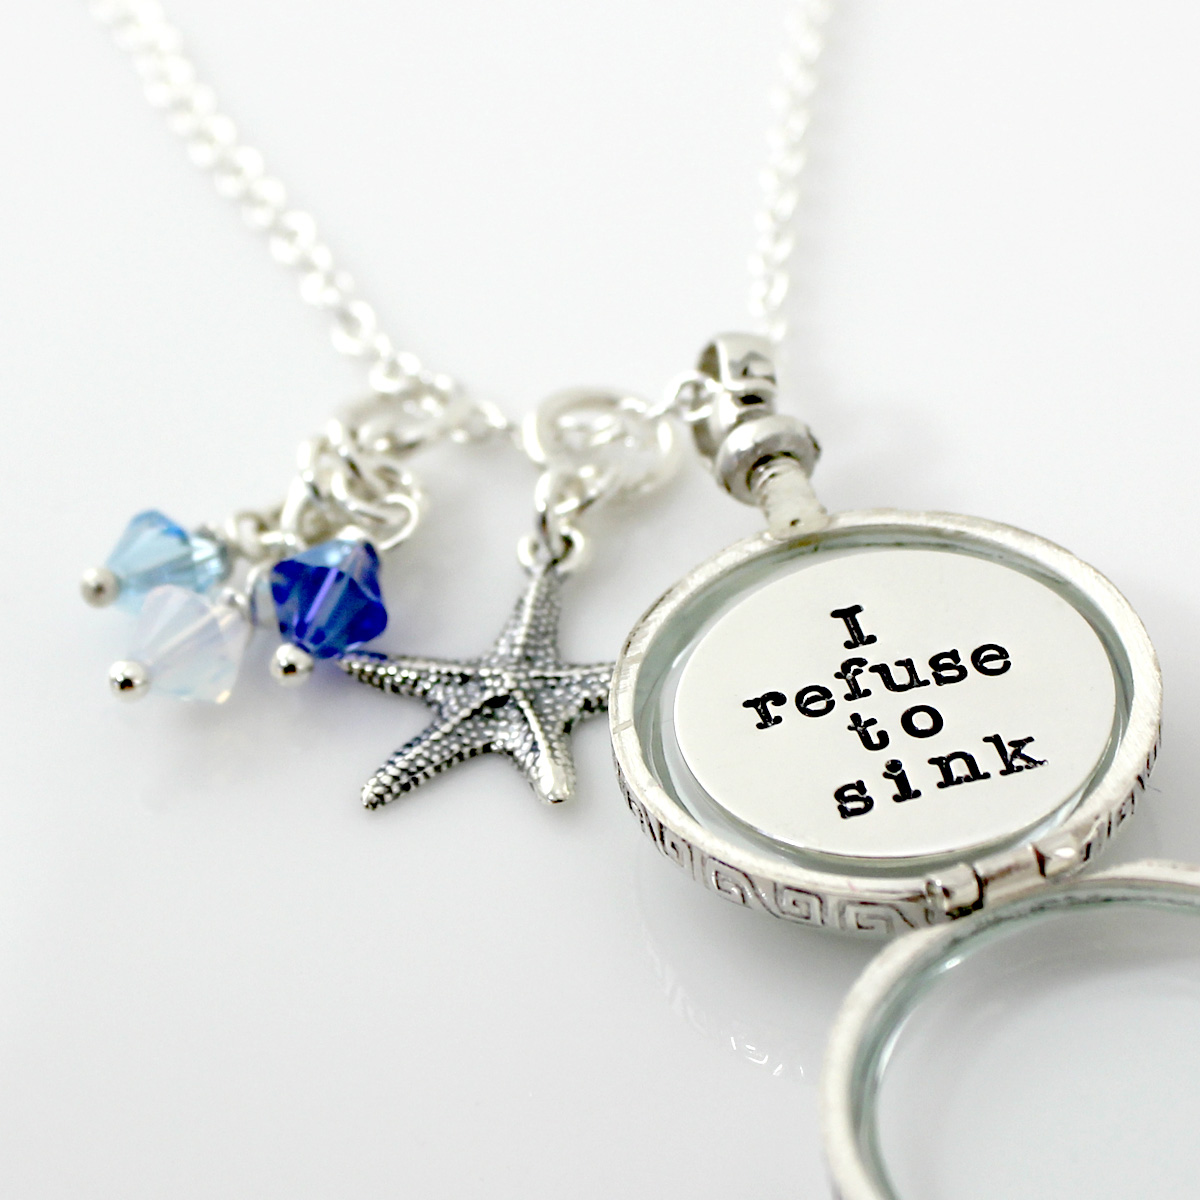 I refuse to sink - Simply Charming Glass Locket Personalized Necklace with Starfish